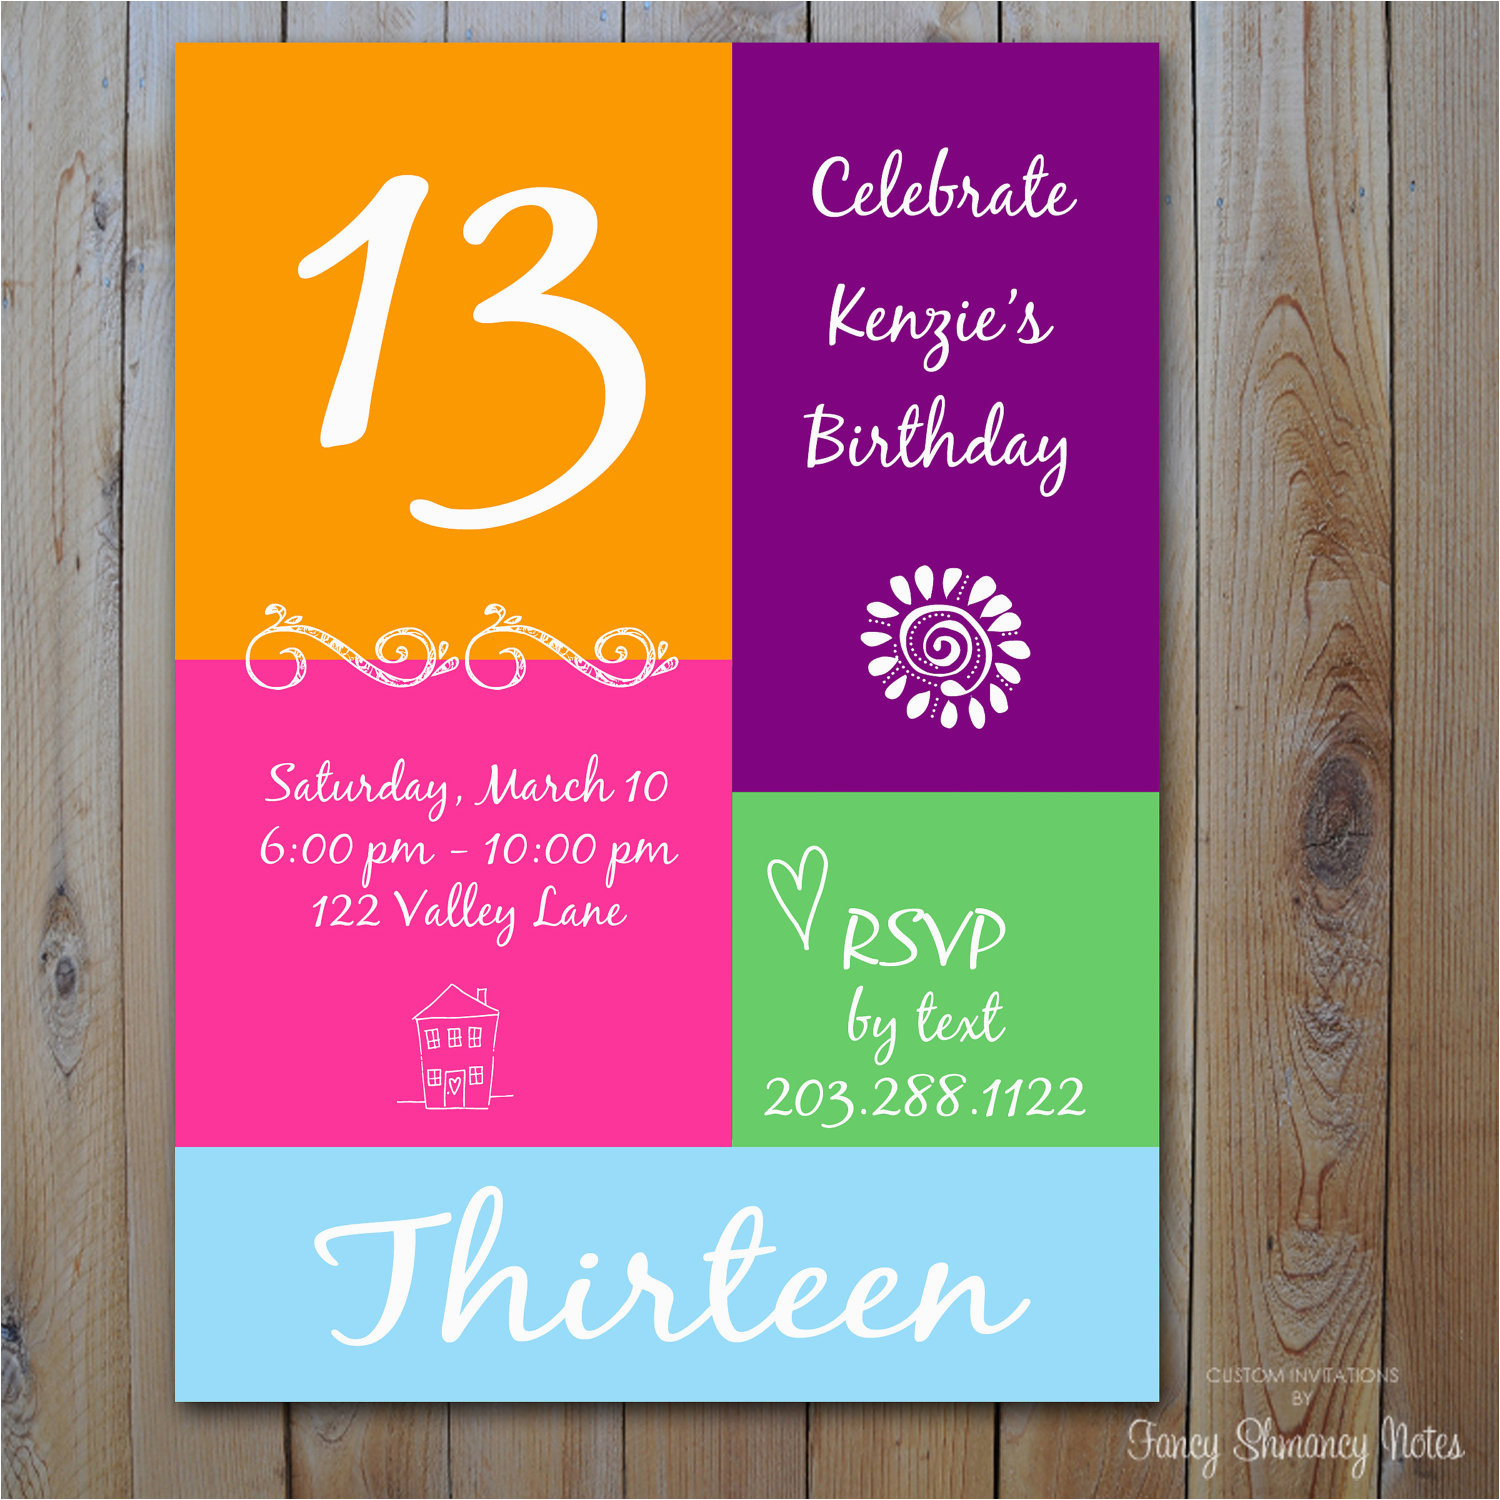 Free Printable 13Th Birthday Party Invitations | Birthdaybuzz - 13Th Birthday Party Invitations Printable Free